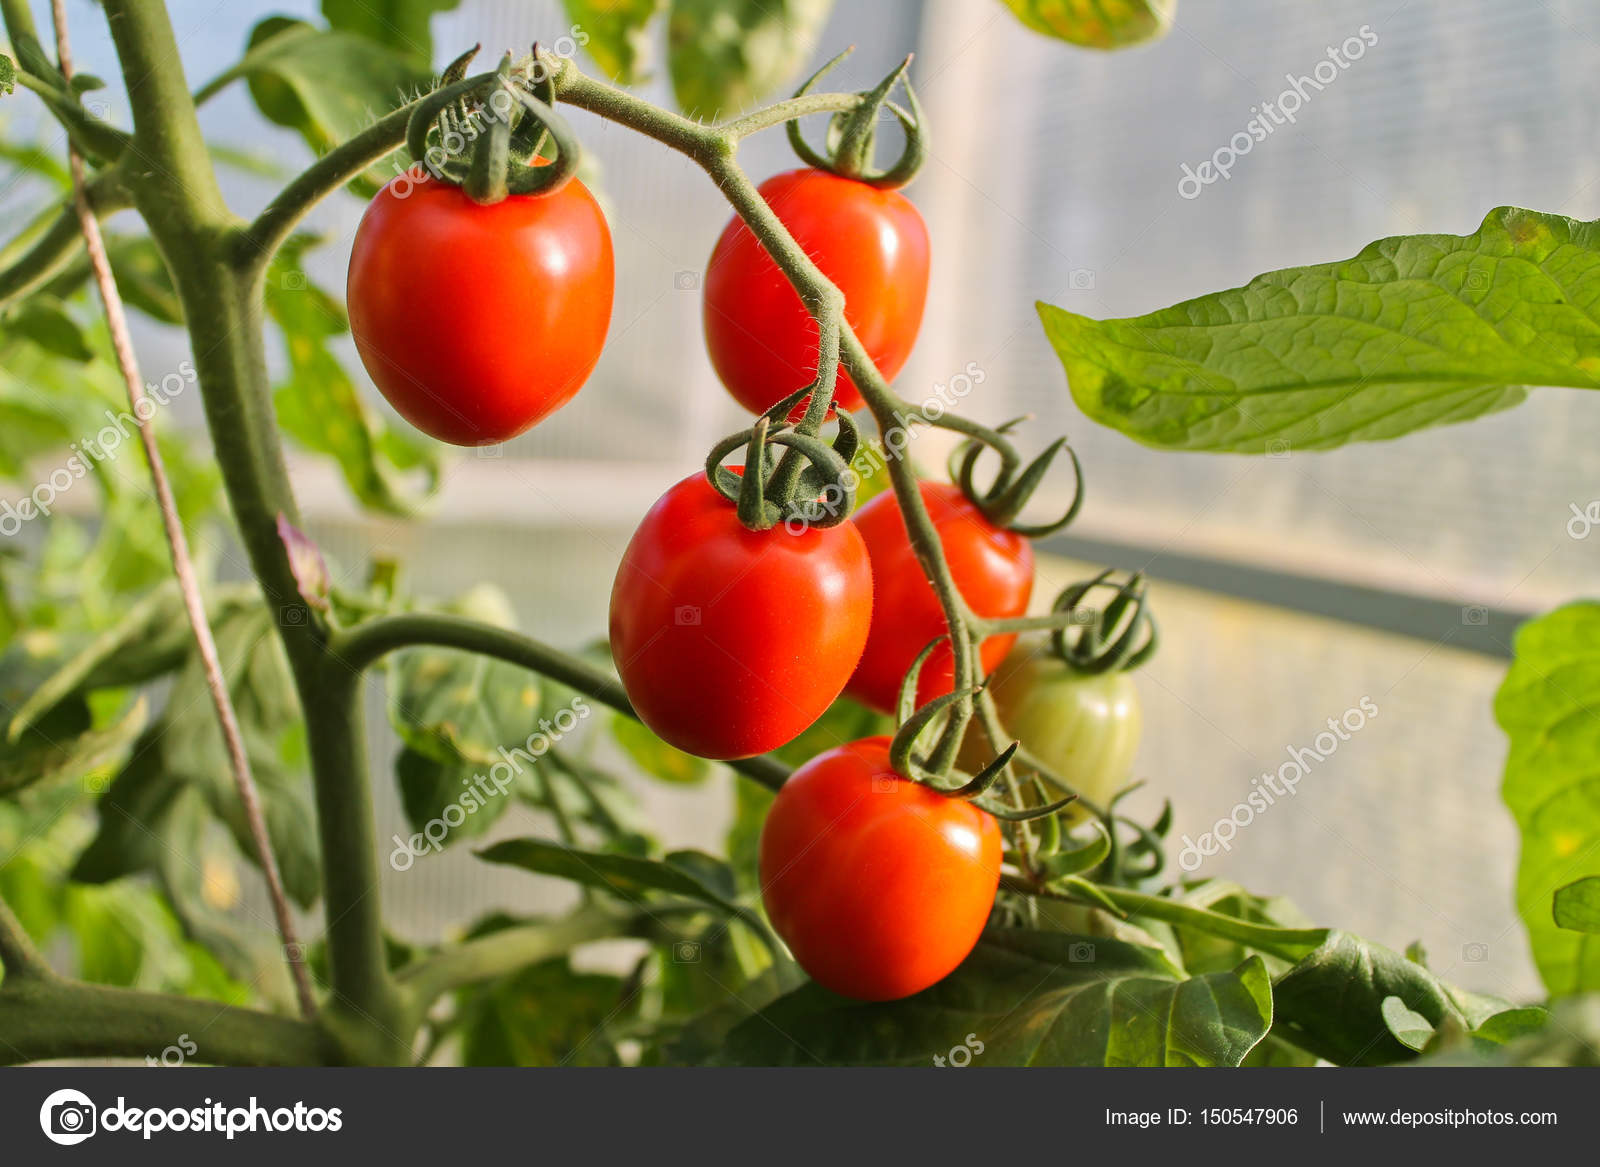 In the greenhouse tomato, agriculture — Stock Photo © tairalist bk